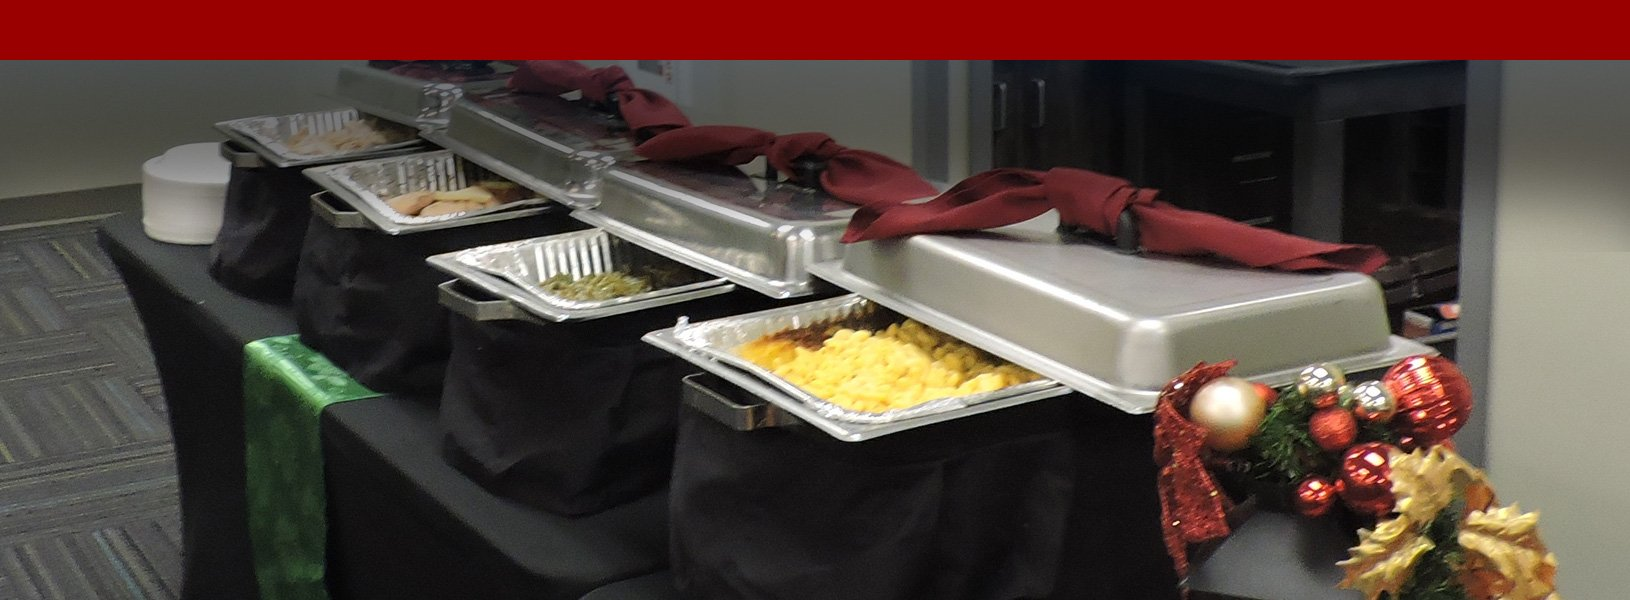 Holiday Catering - Elite Event Services